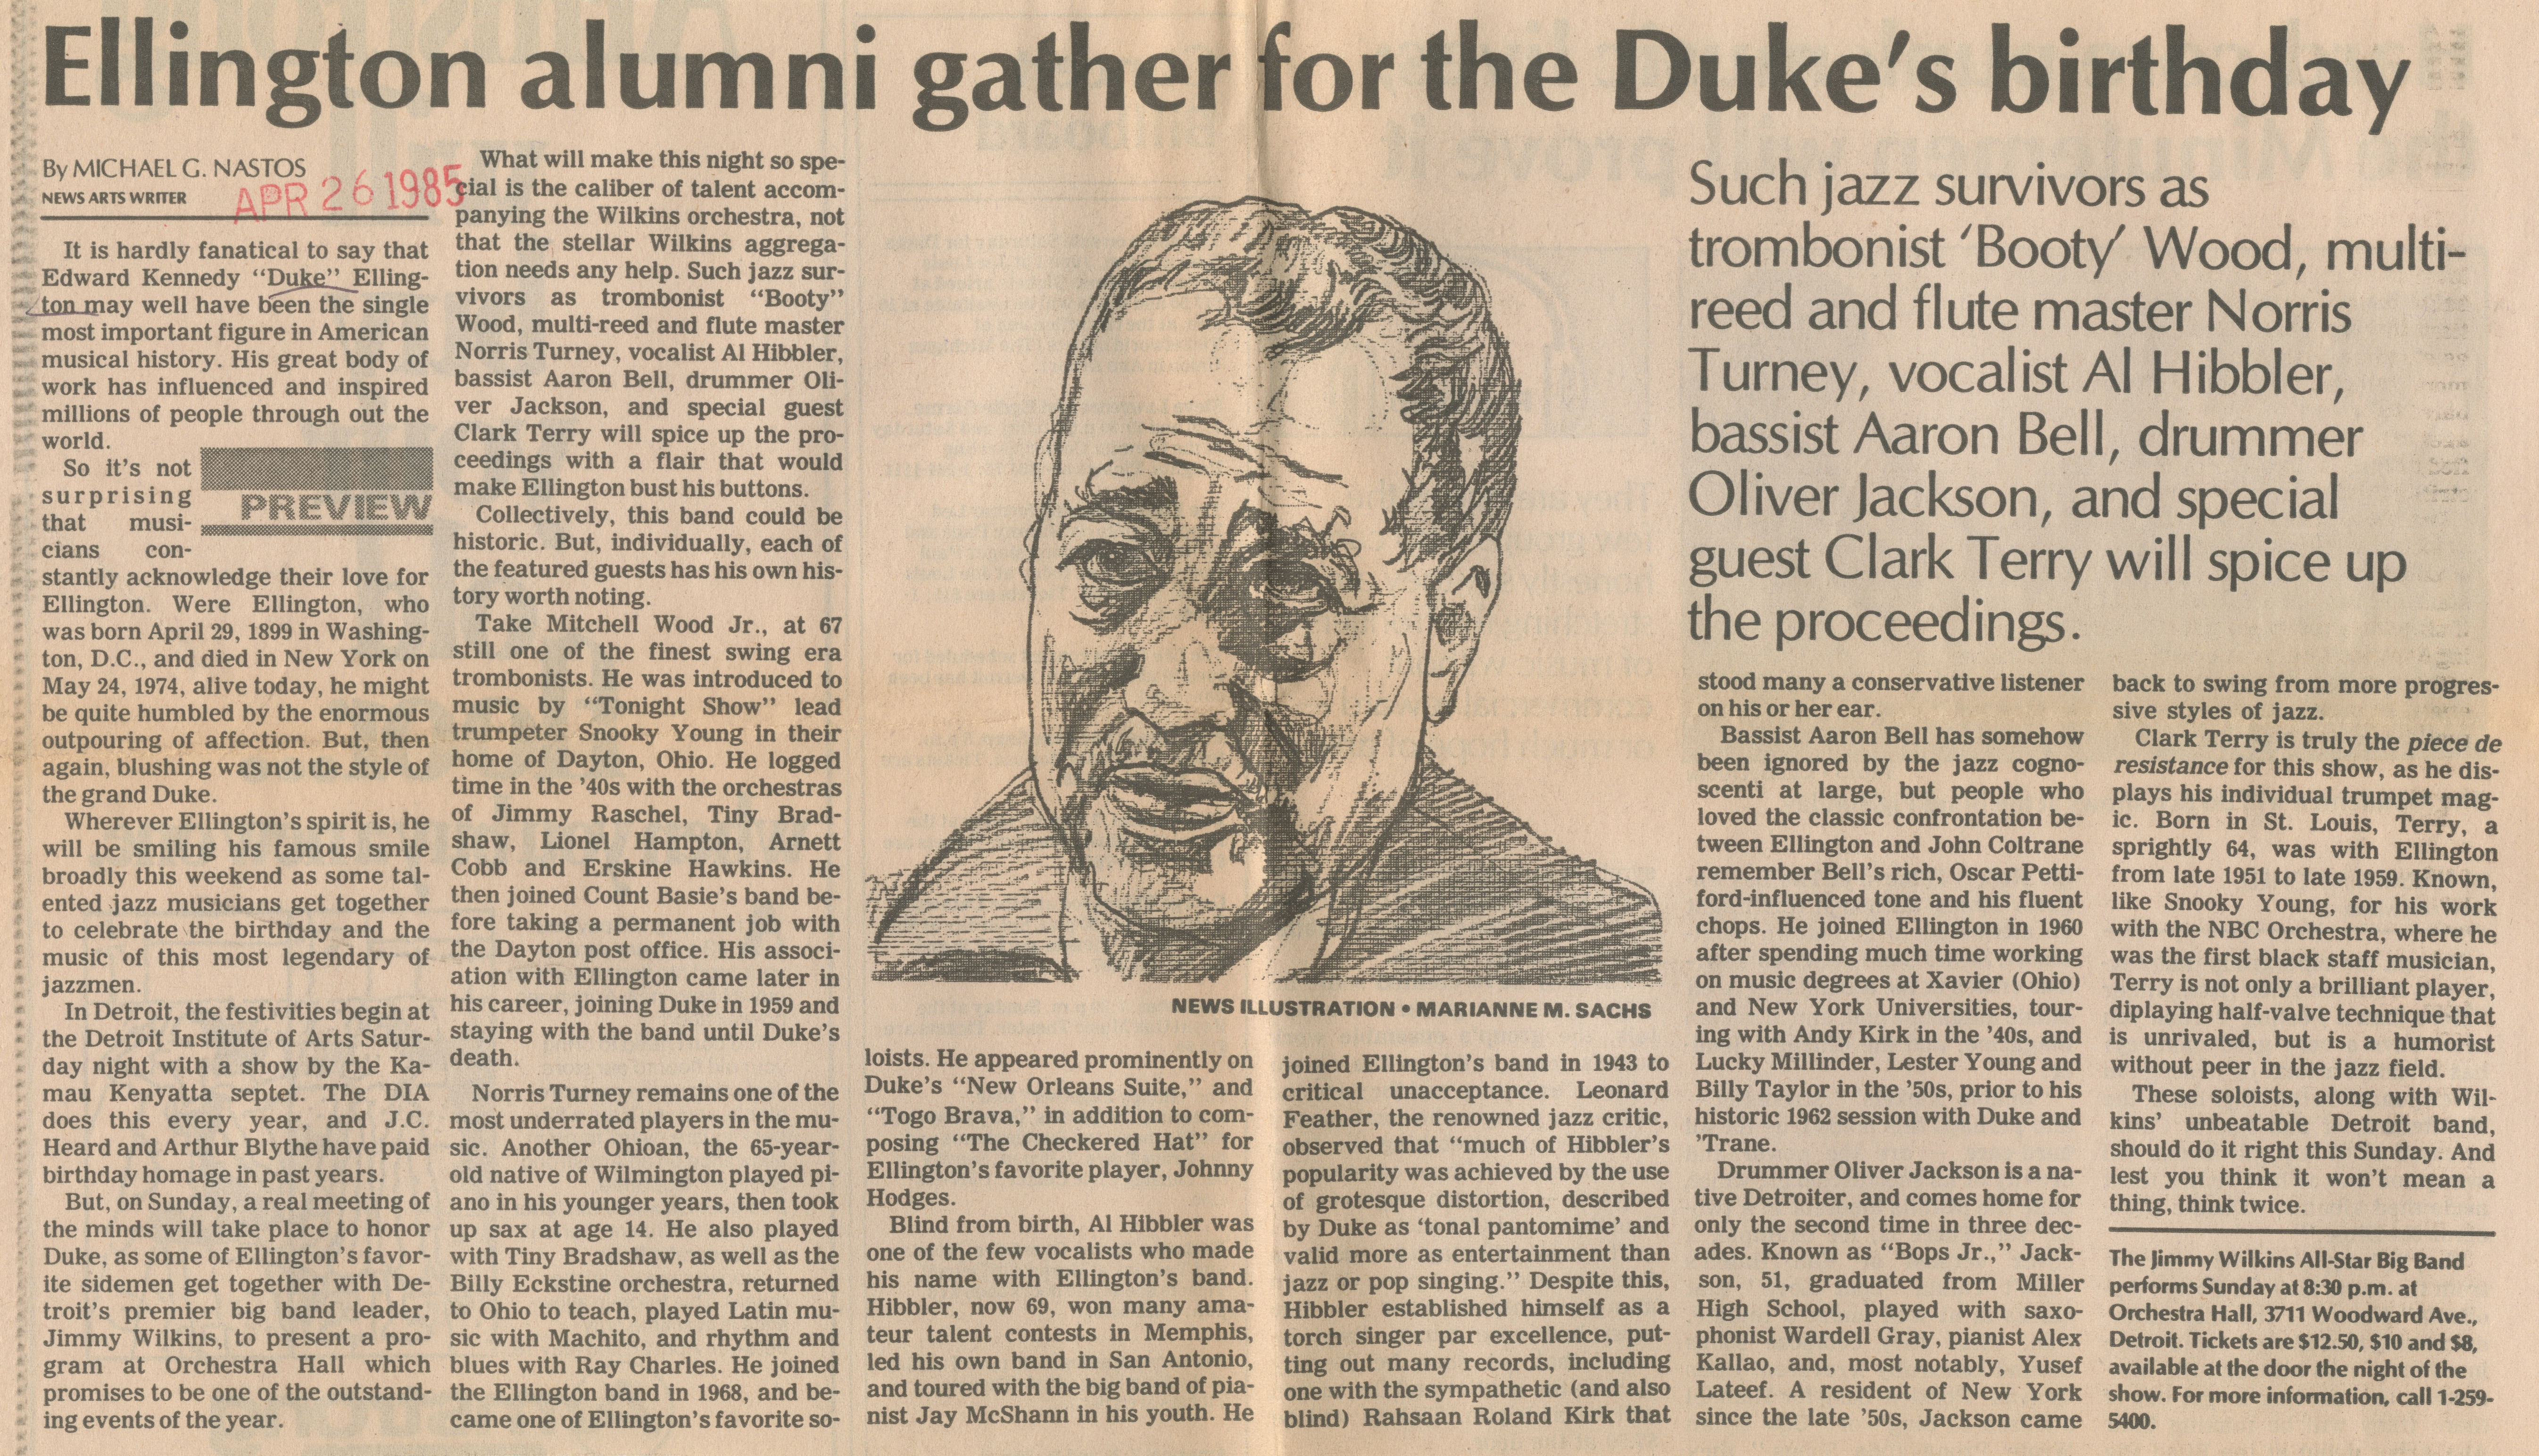 Ellington Alumni Gather For The Duke's Birthday image